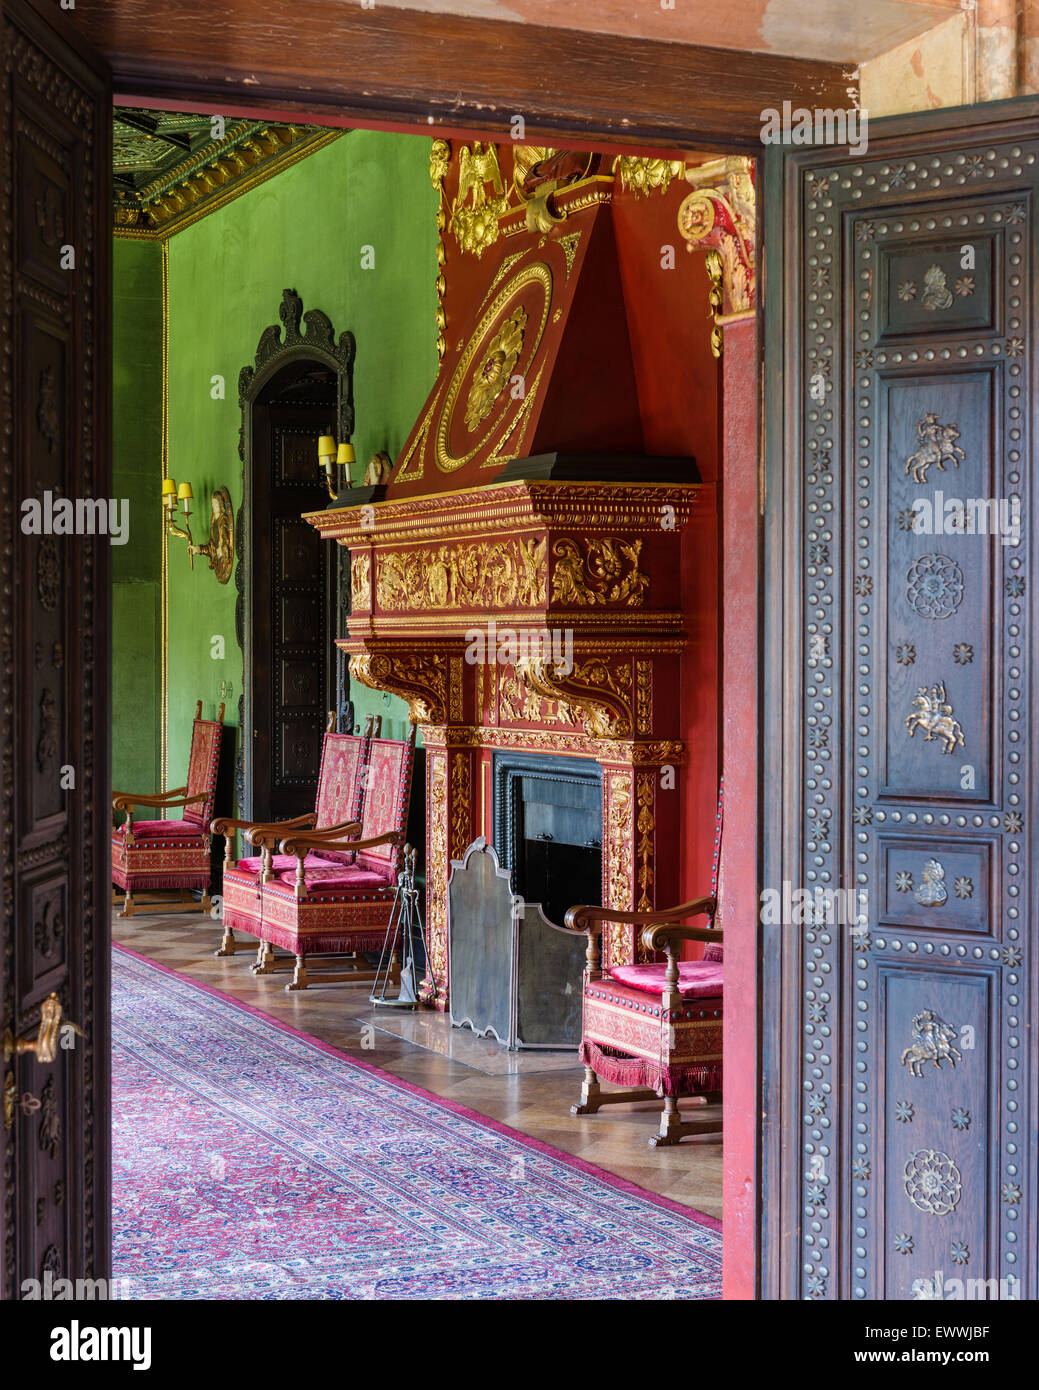 Ornate gilt stucco fireplace in stately home - Stock Image